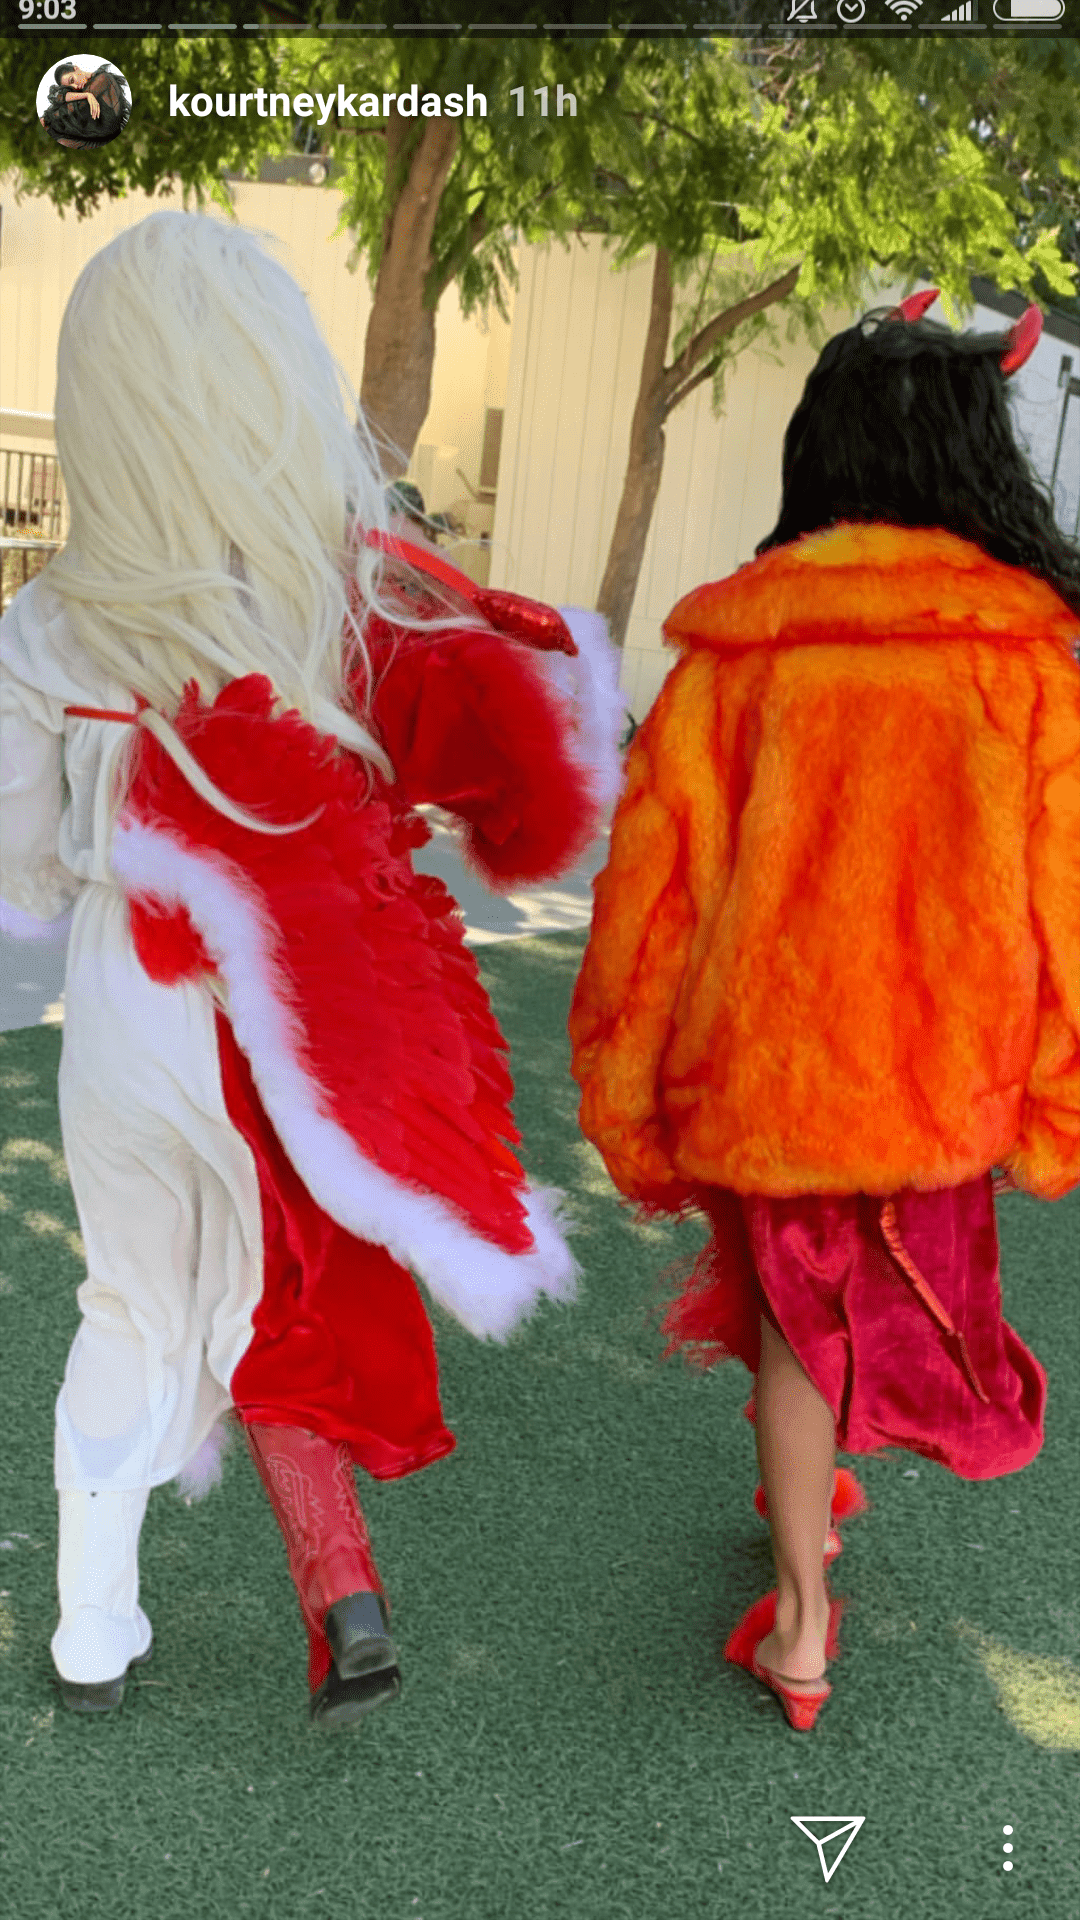 Penelope Disick goes and an angel/devil and North West dresses as a devil for Halloween | Source: instagram.com/kourtneykardash